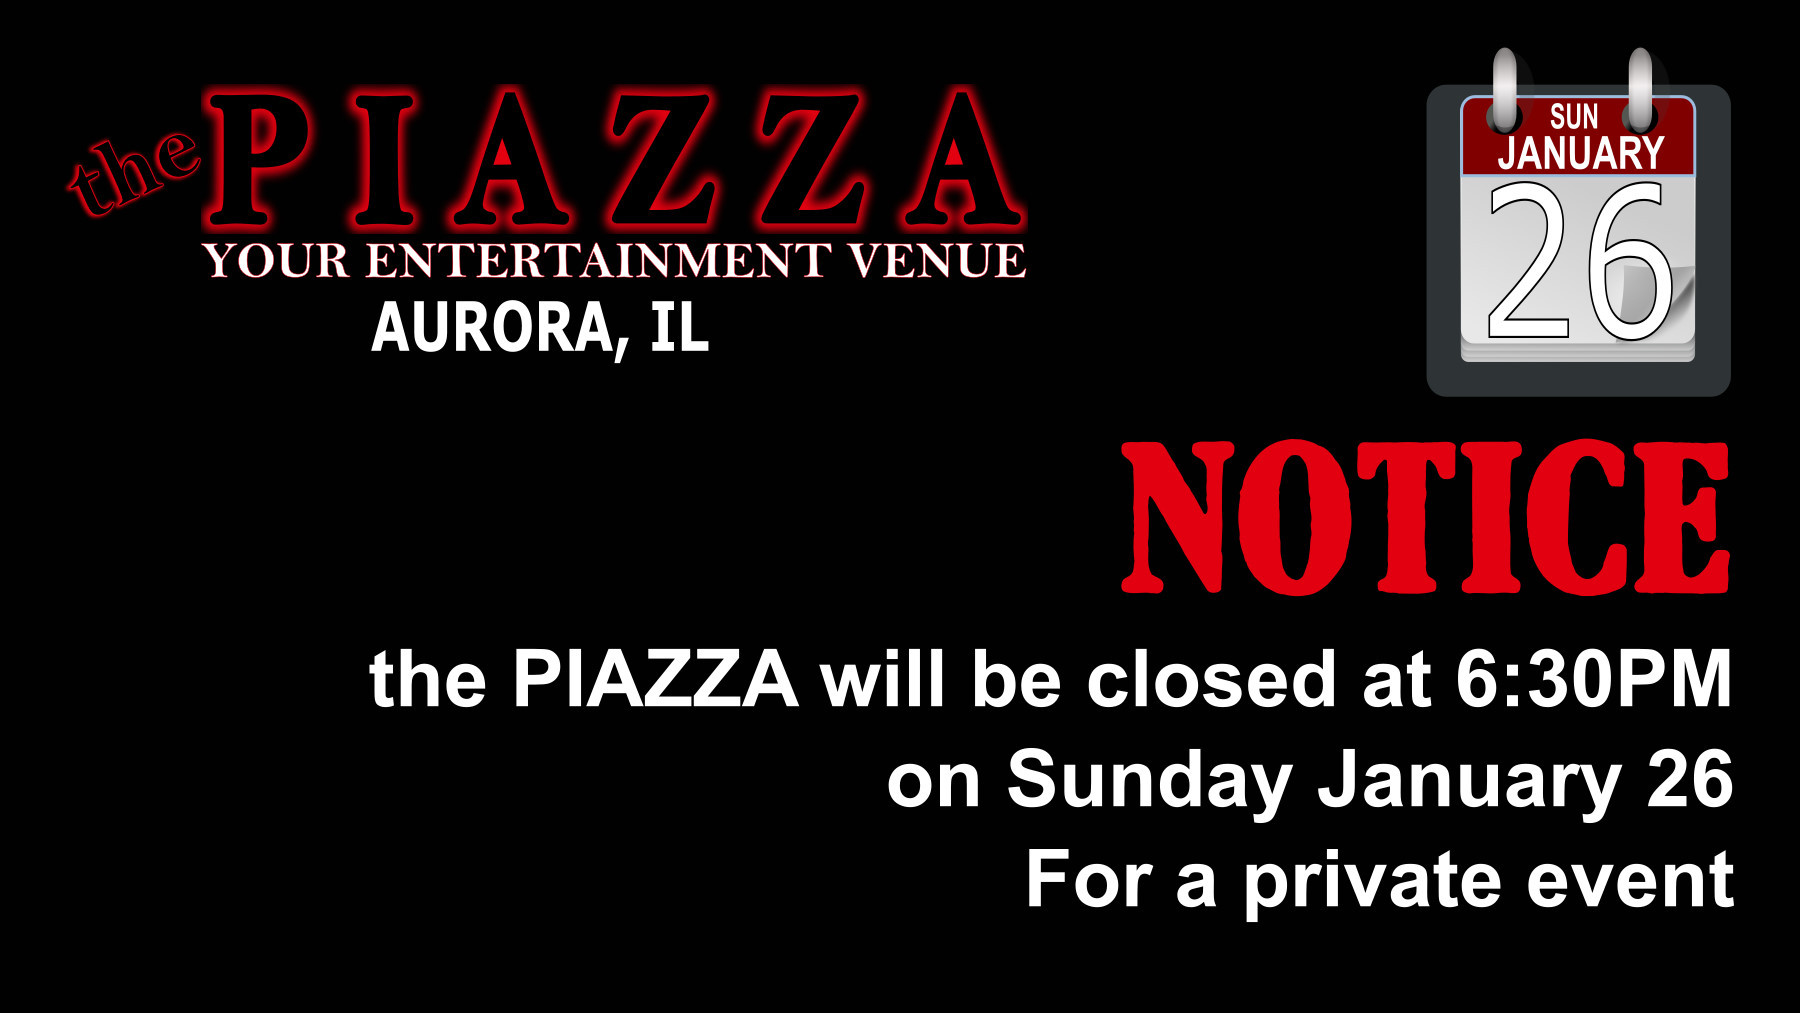 closing at 6:30pm on Sun Jan 26 @ the PIAZZA - Aurora